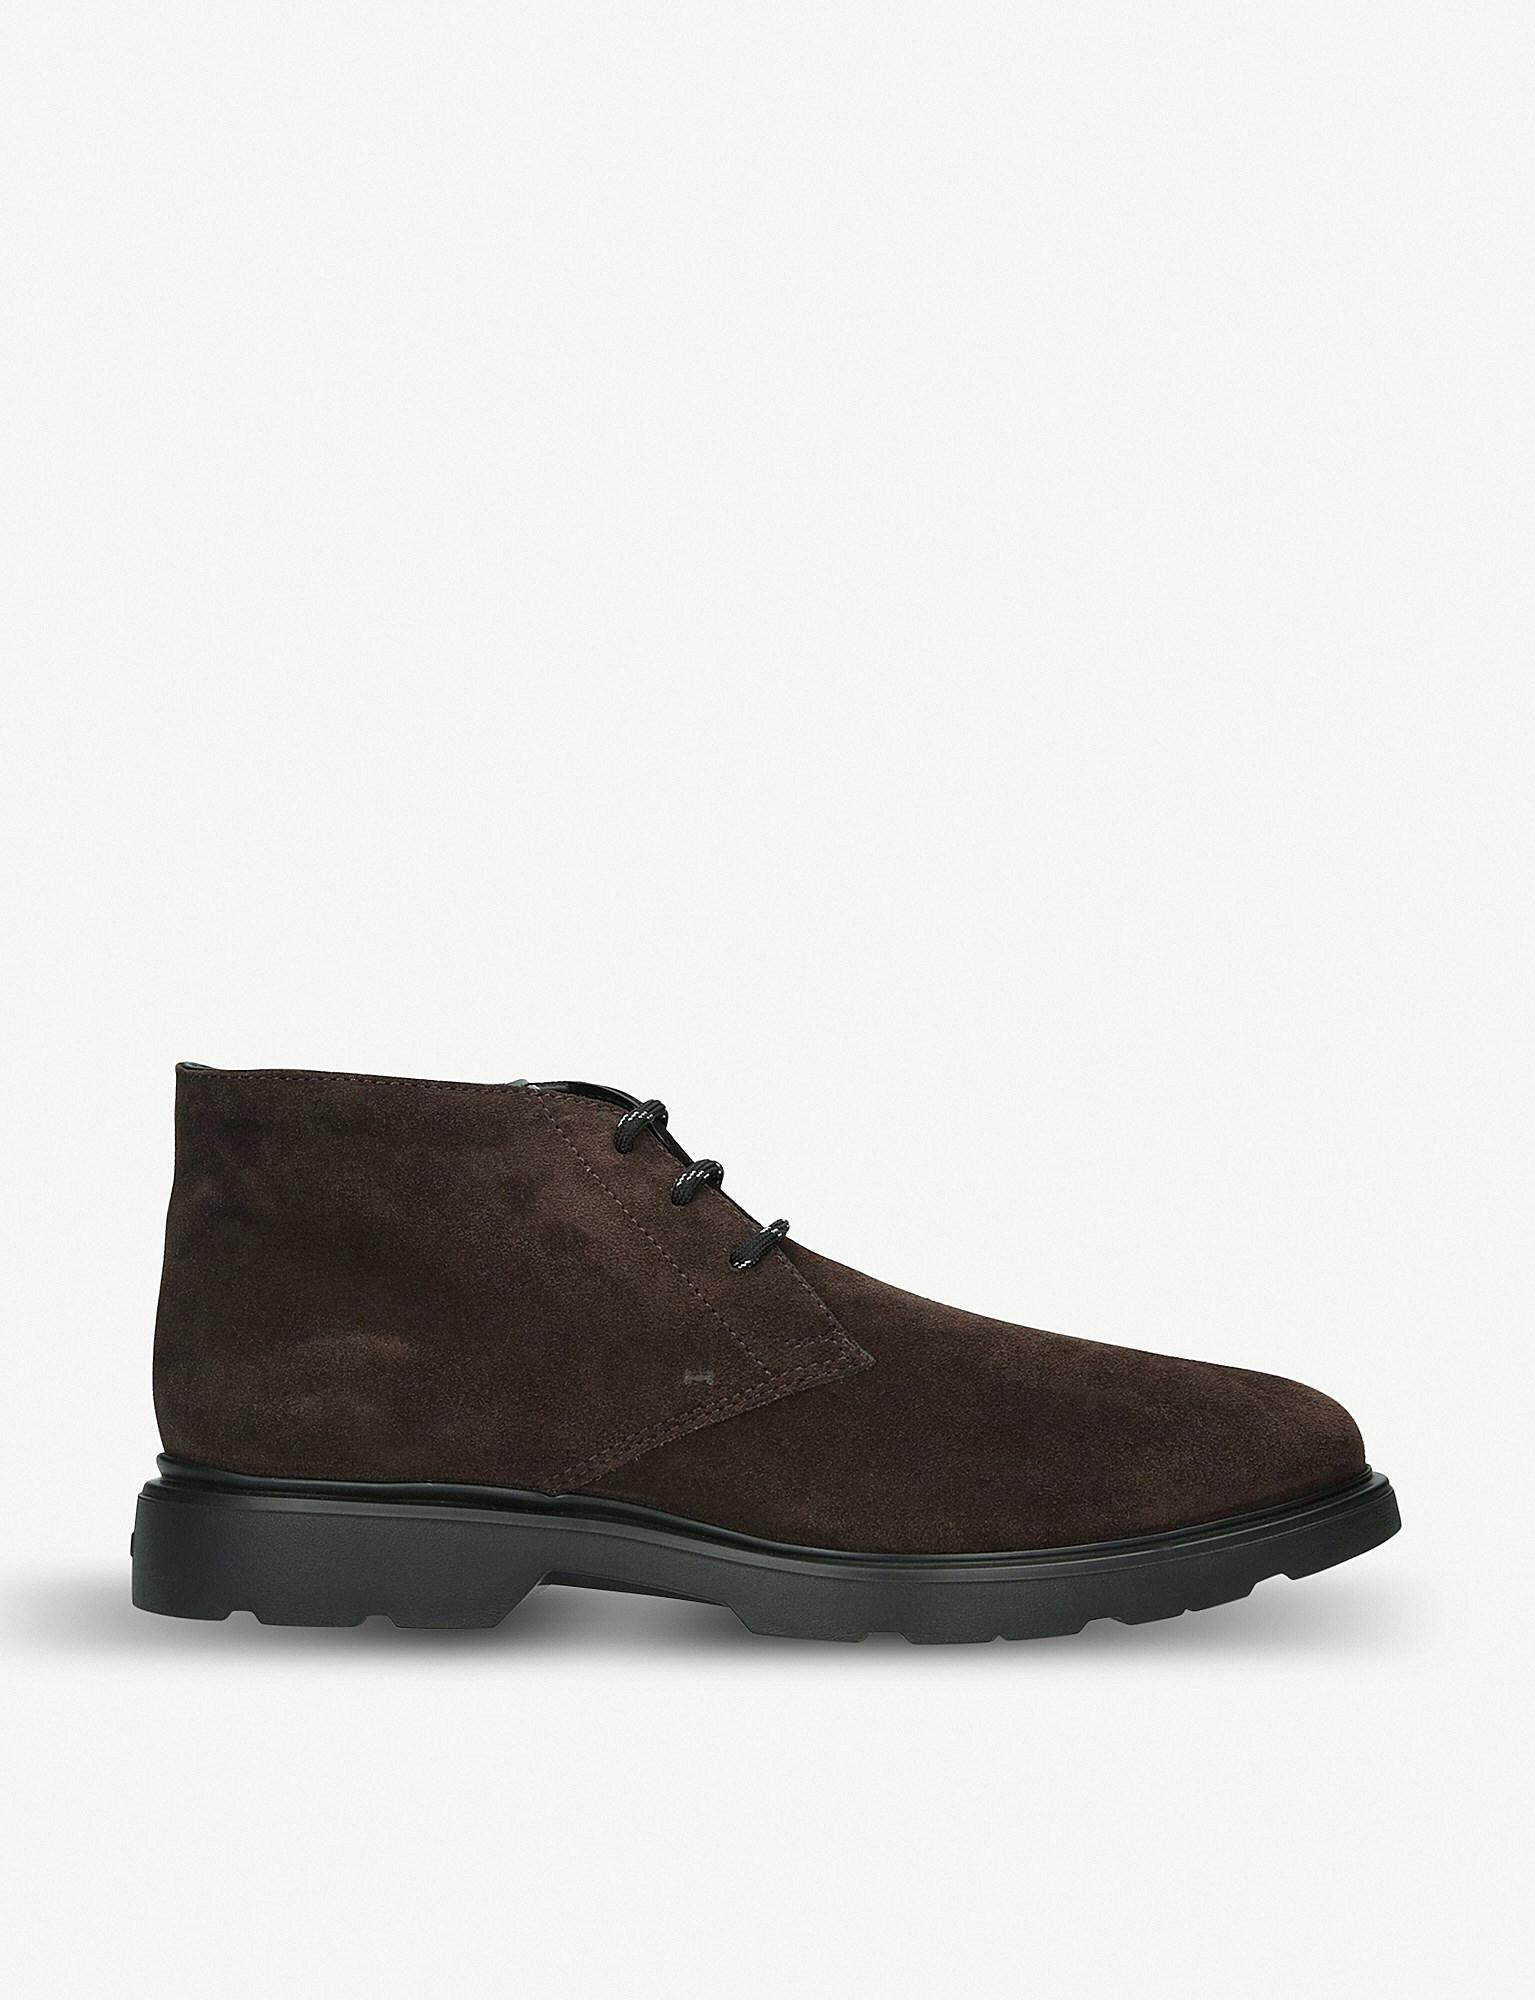 4e5fed405b Hogan Chukka Suede Boots in Brown for Men - Lyst